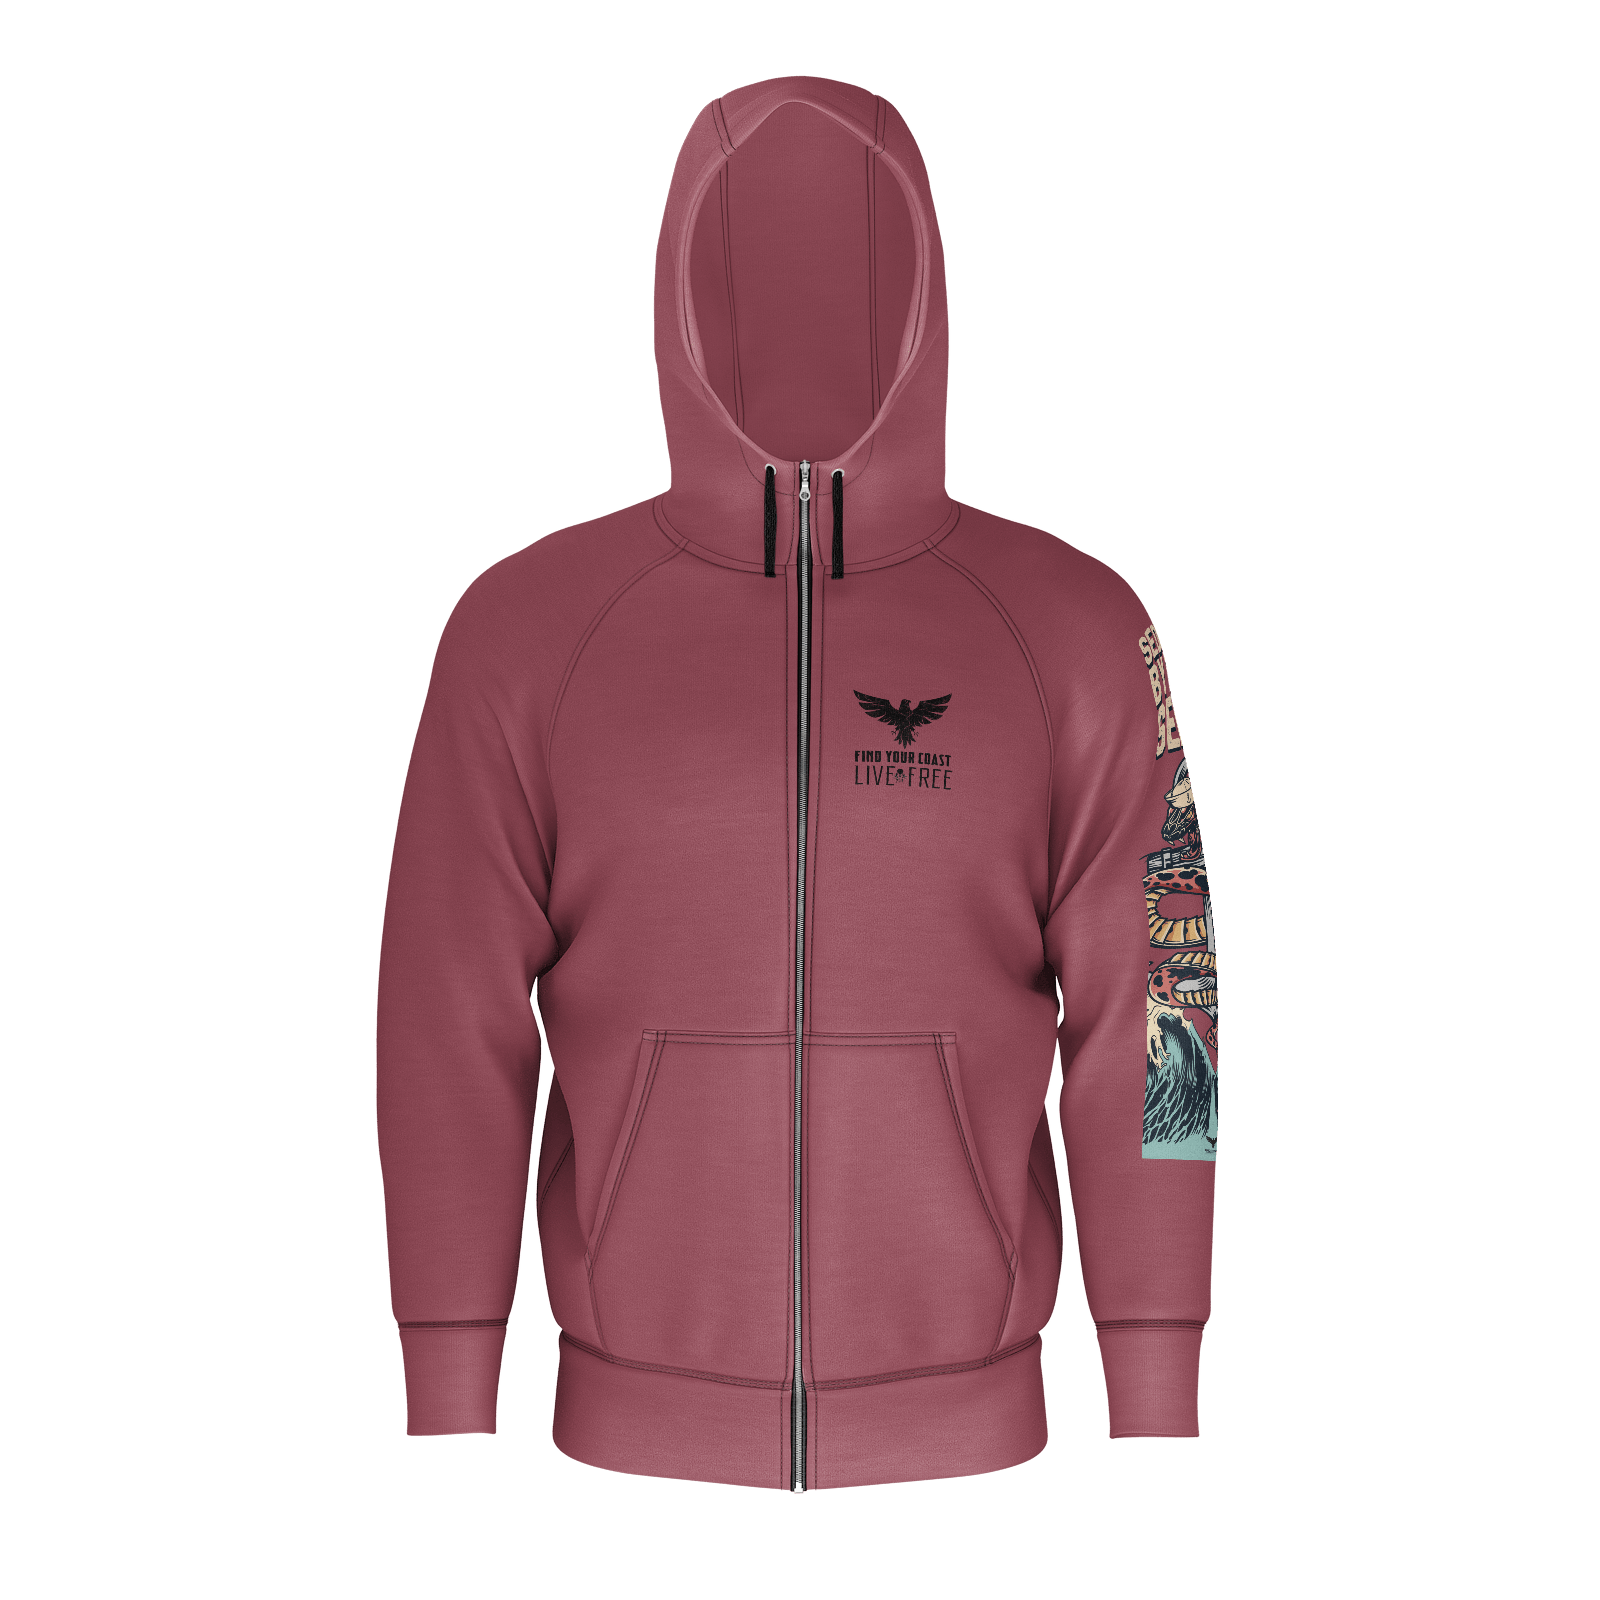 Men's Seduced By The Seas Live Free Edition Sustainable Zip Up Hoodie